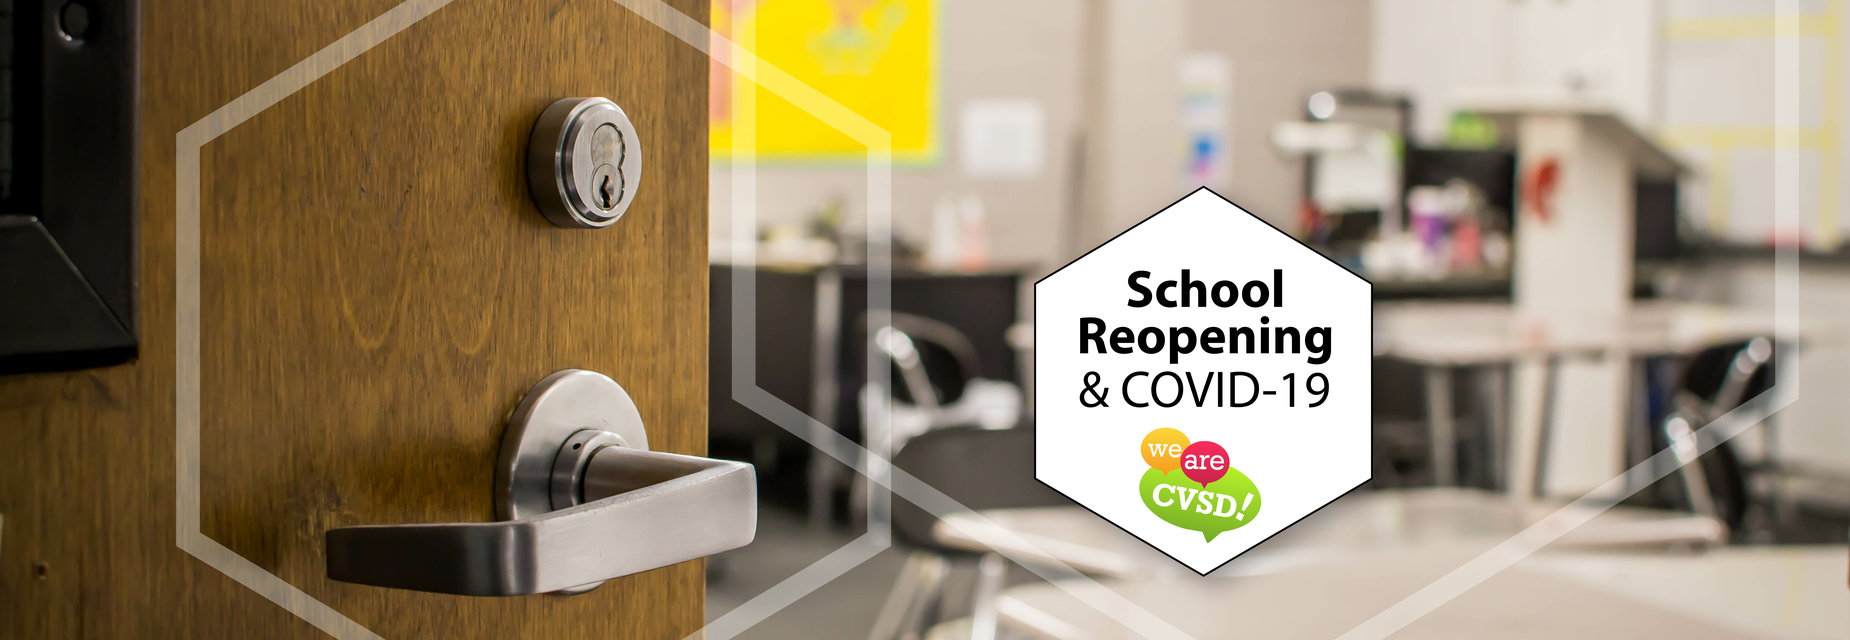 Covid-19 & School Reopening